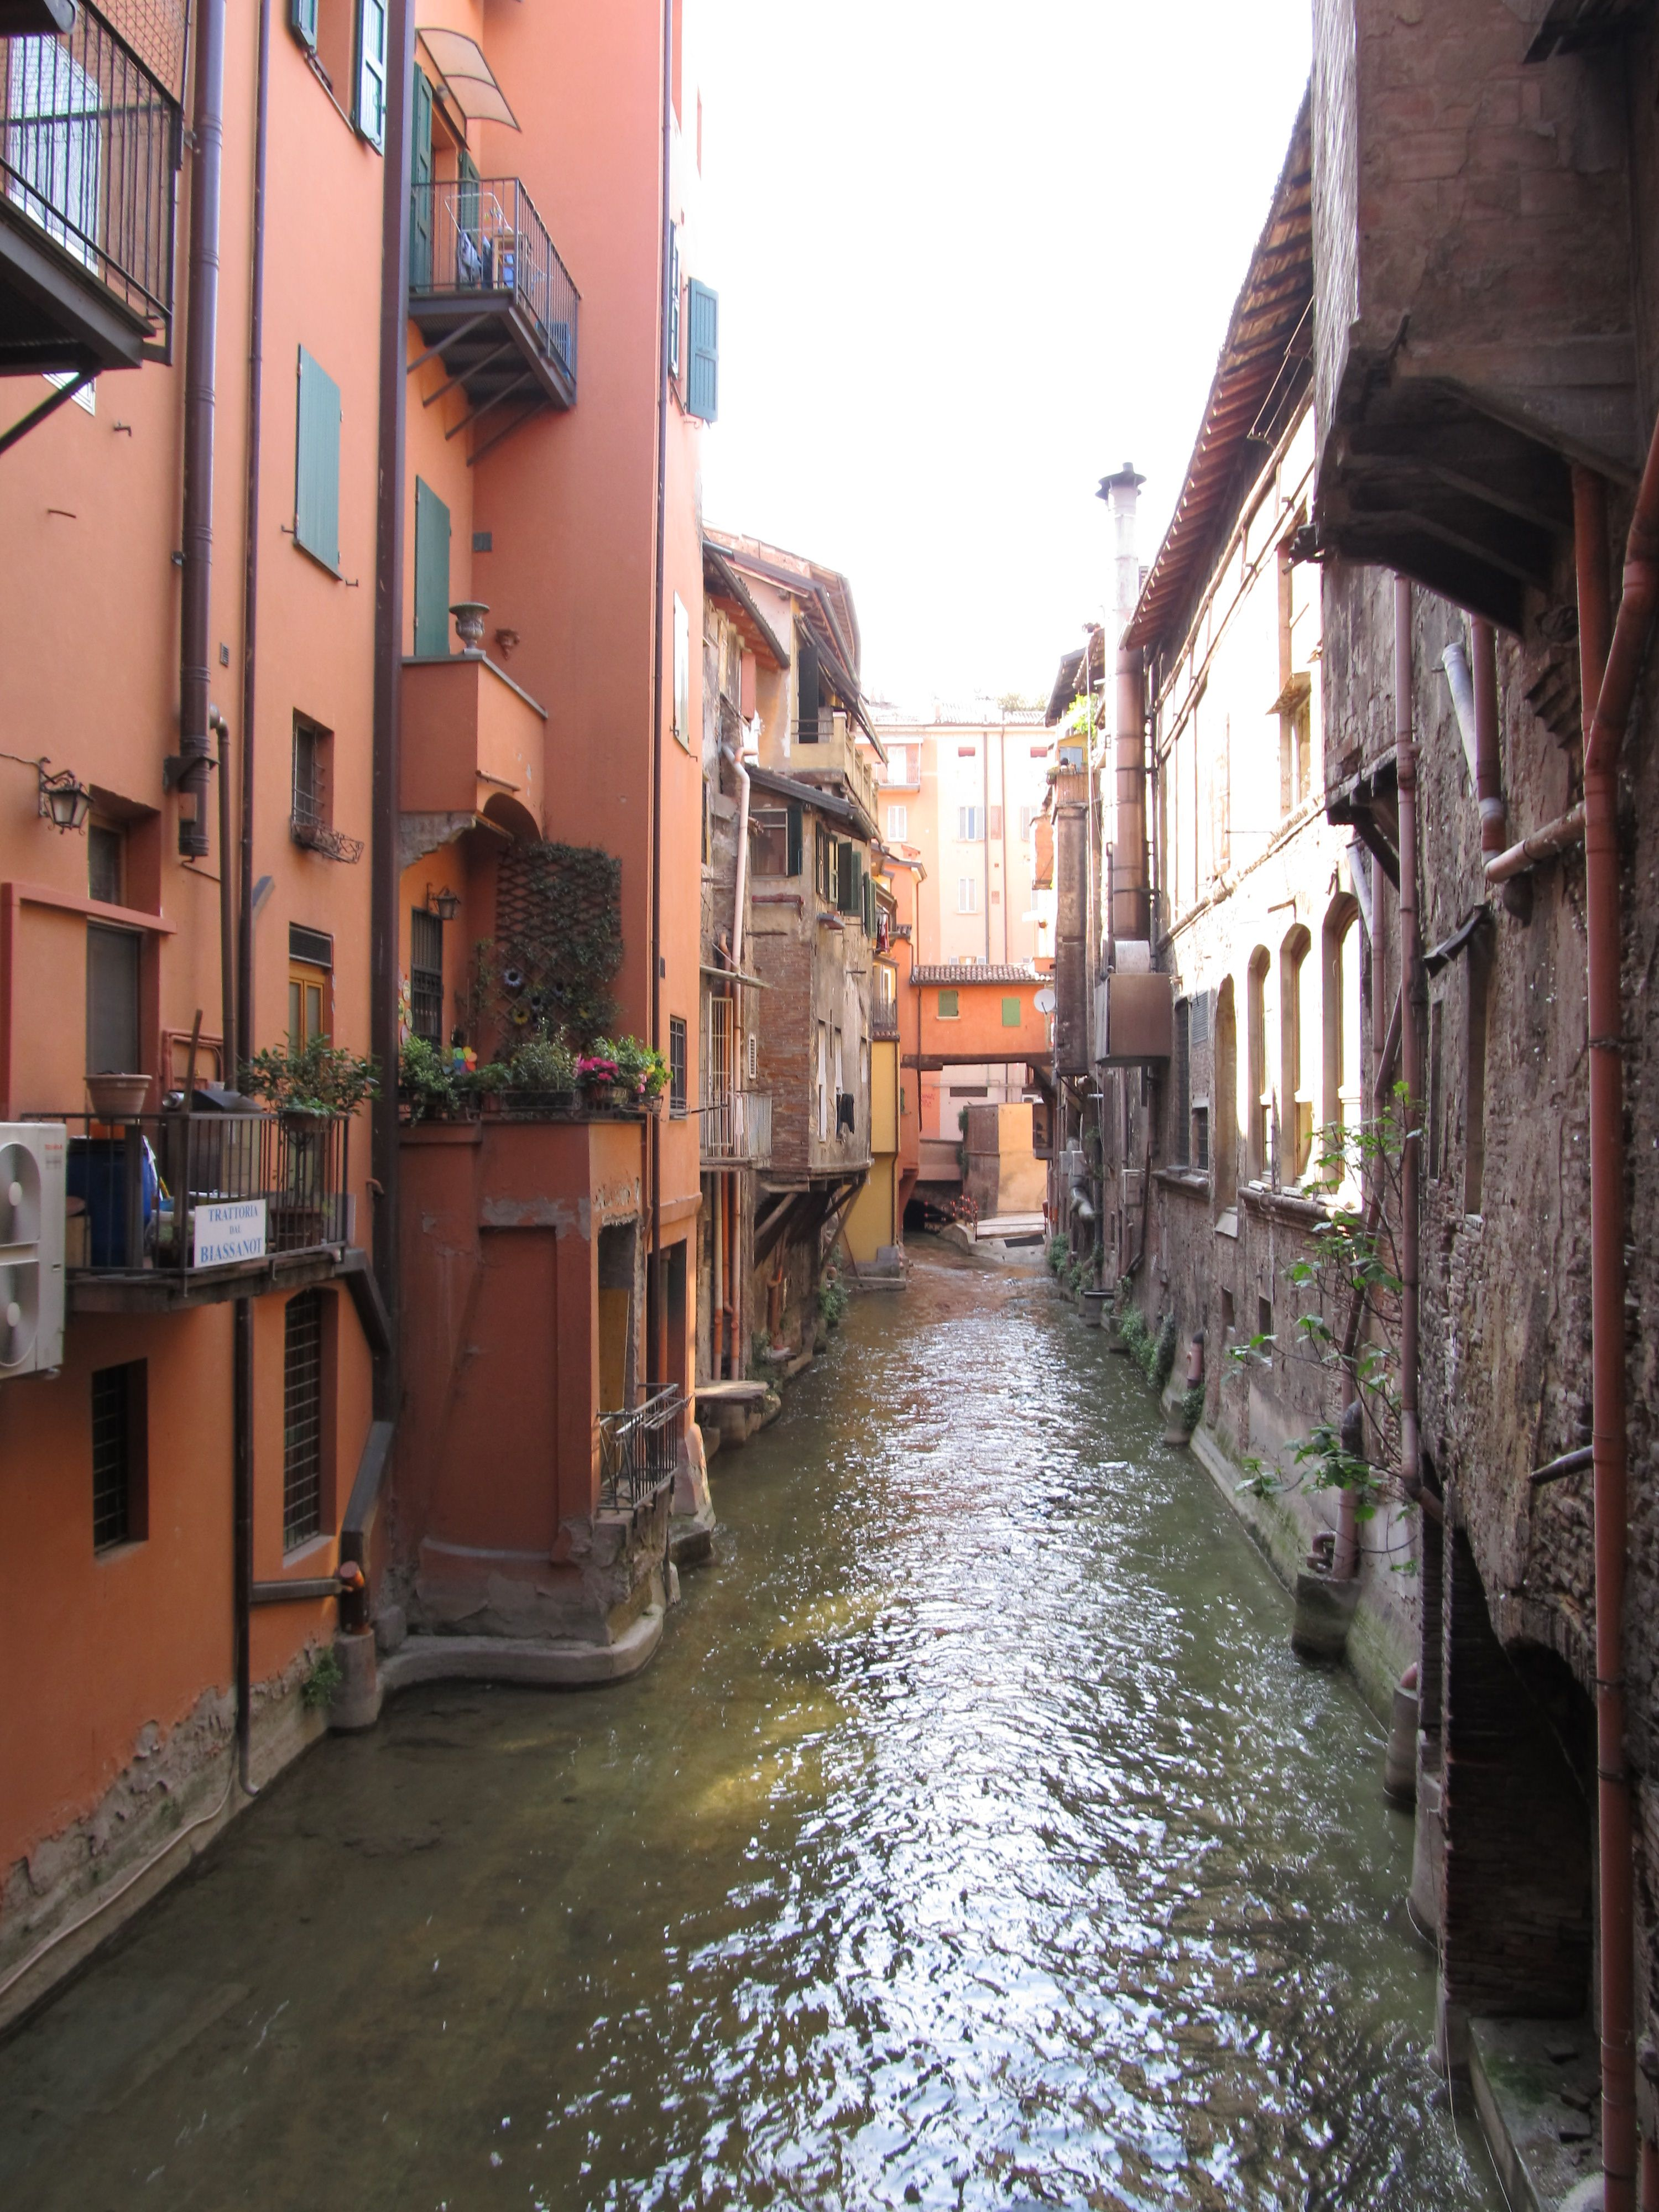 Picture I took looking through a window on the streets of Bologna, Italy. There are several canals that run under the city, and in places they are exposed.